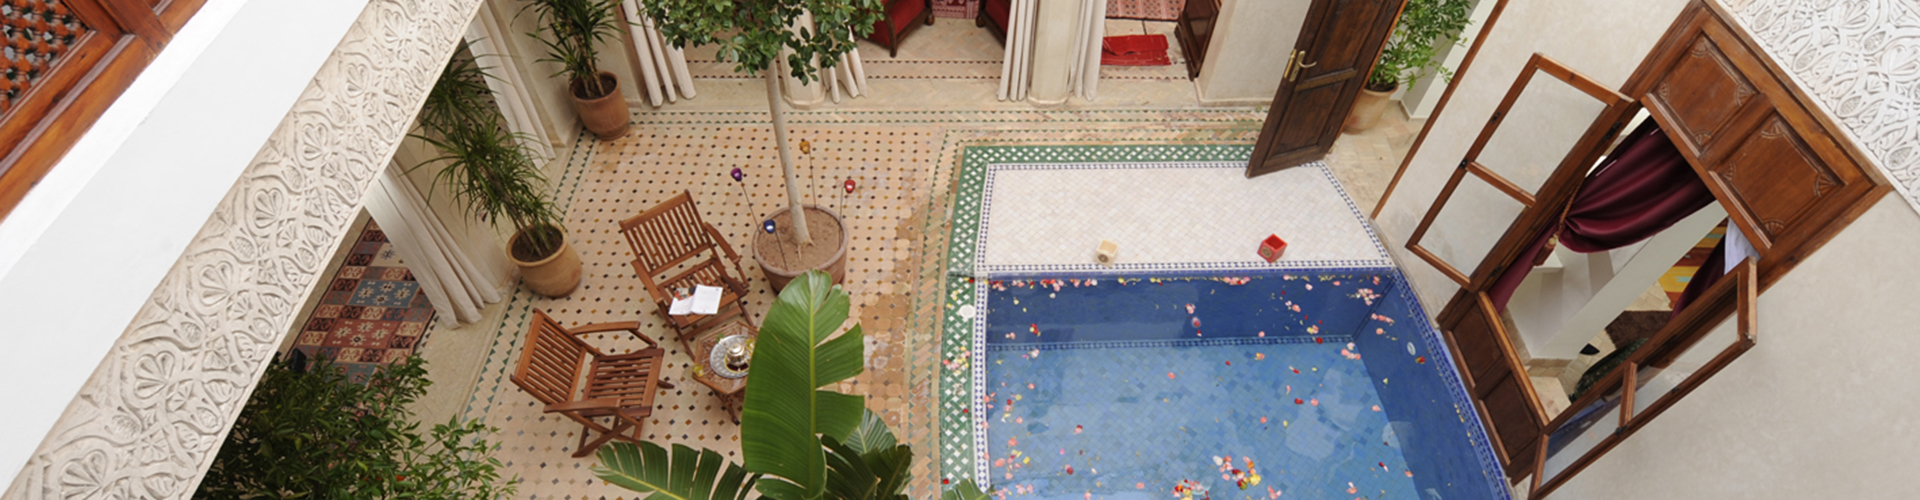 Patio con piscina del Riad de la Belle Époque, Marrakech.